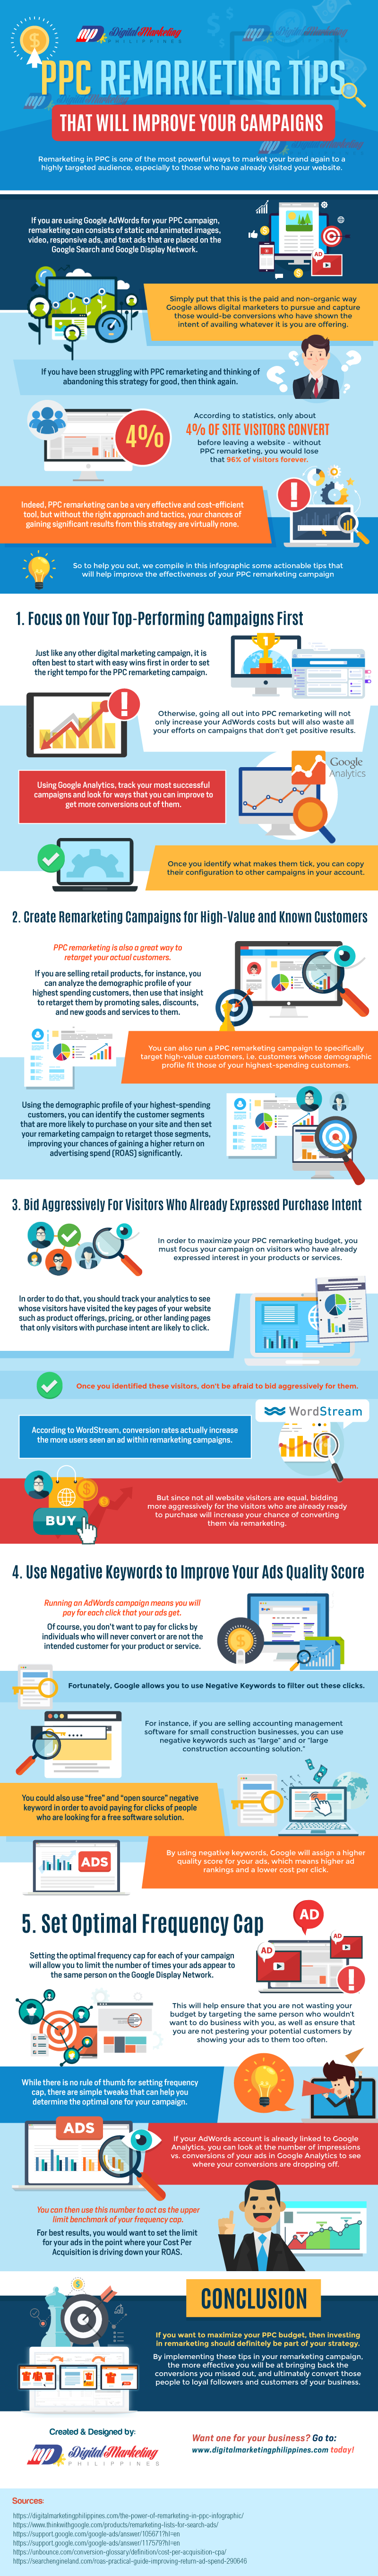 PPC Remarketing Tips That Will Improve Your Campaigns [Infographic]